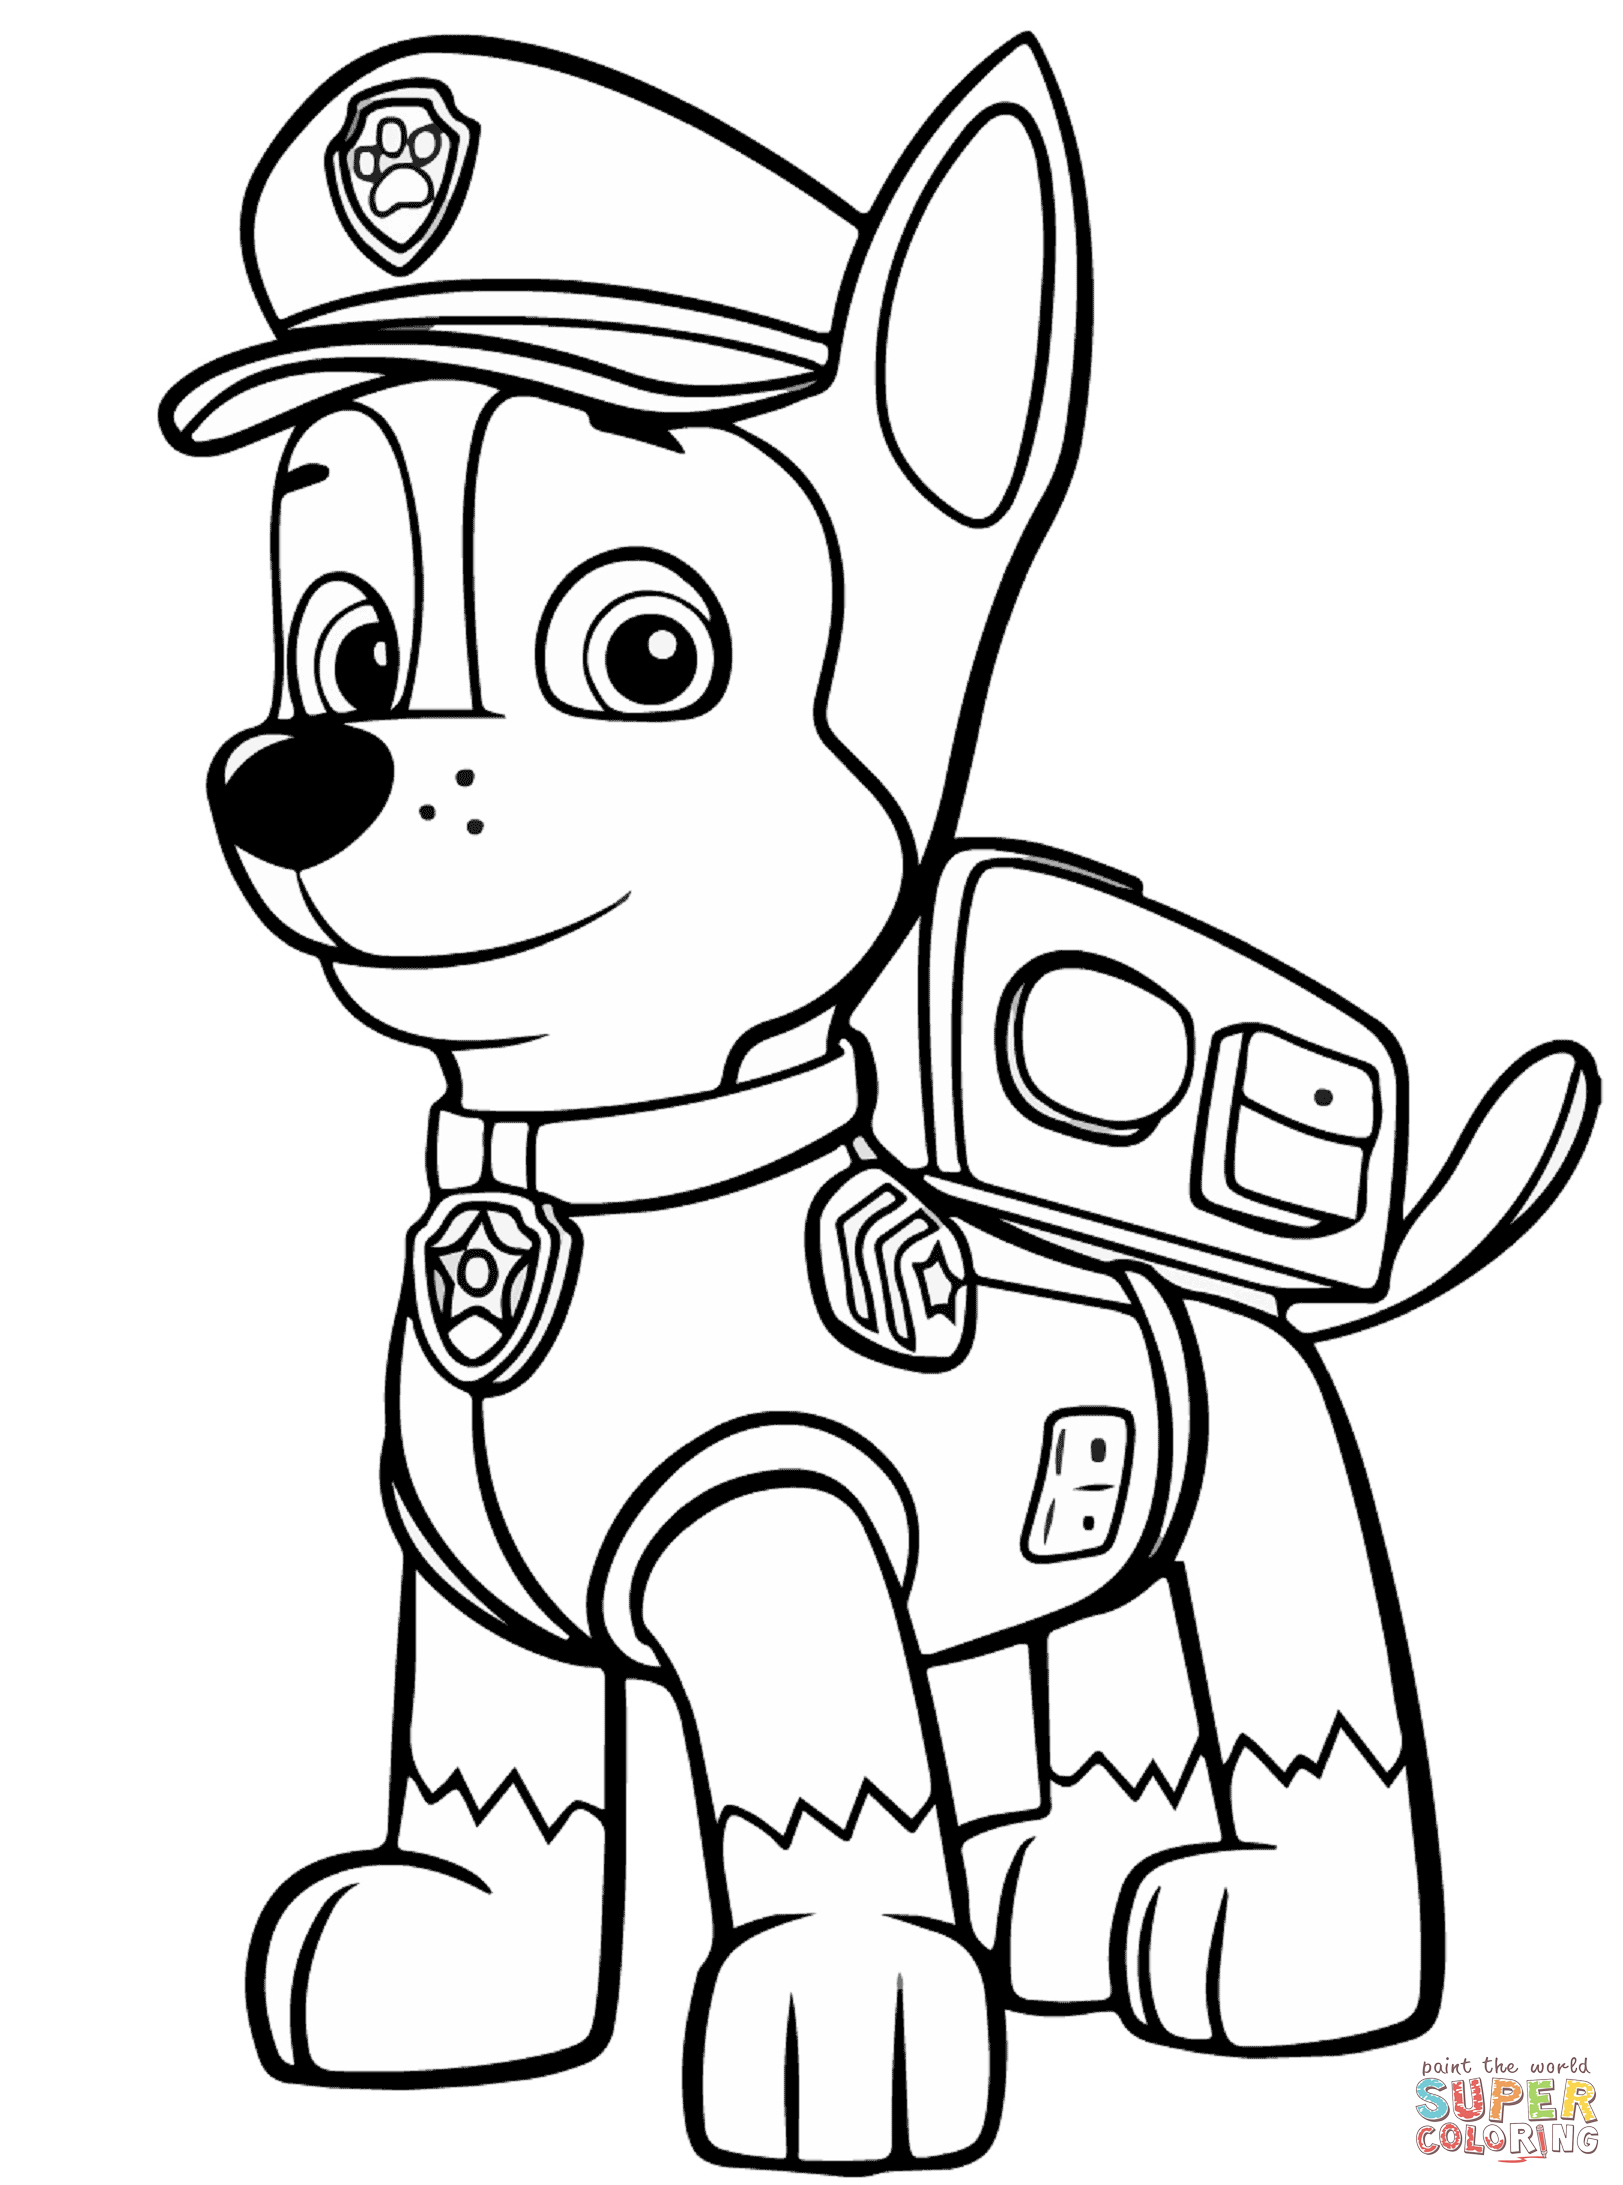 paw patrol chase coloring page paw patrol chase coloring pages coloringstar sketch patrol coloring page chase paw